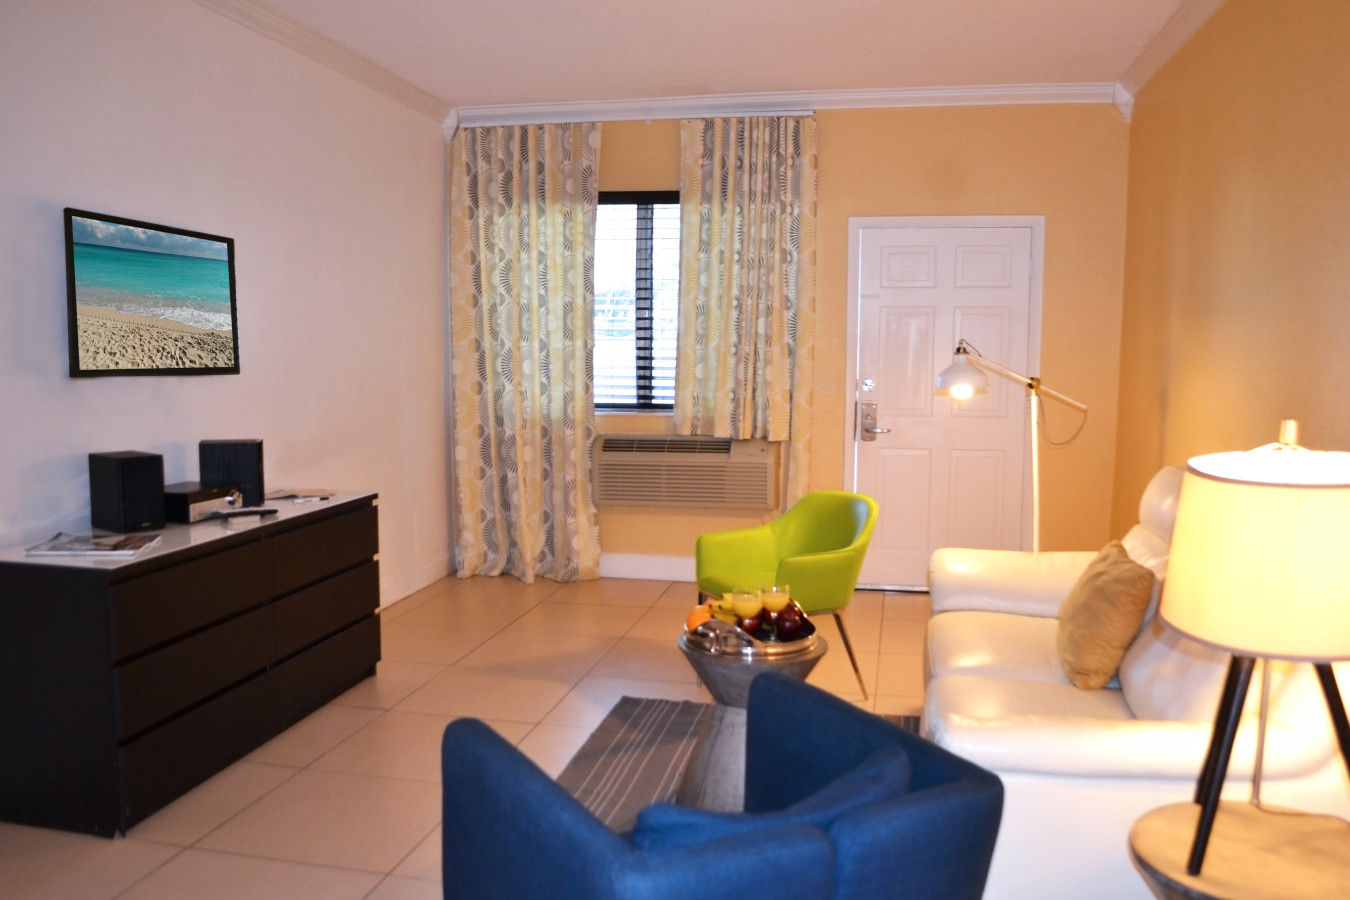 Beachside Apartment Hotel - Living Room Area